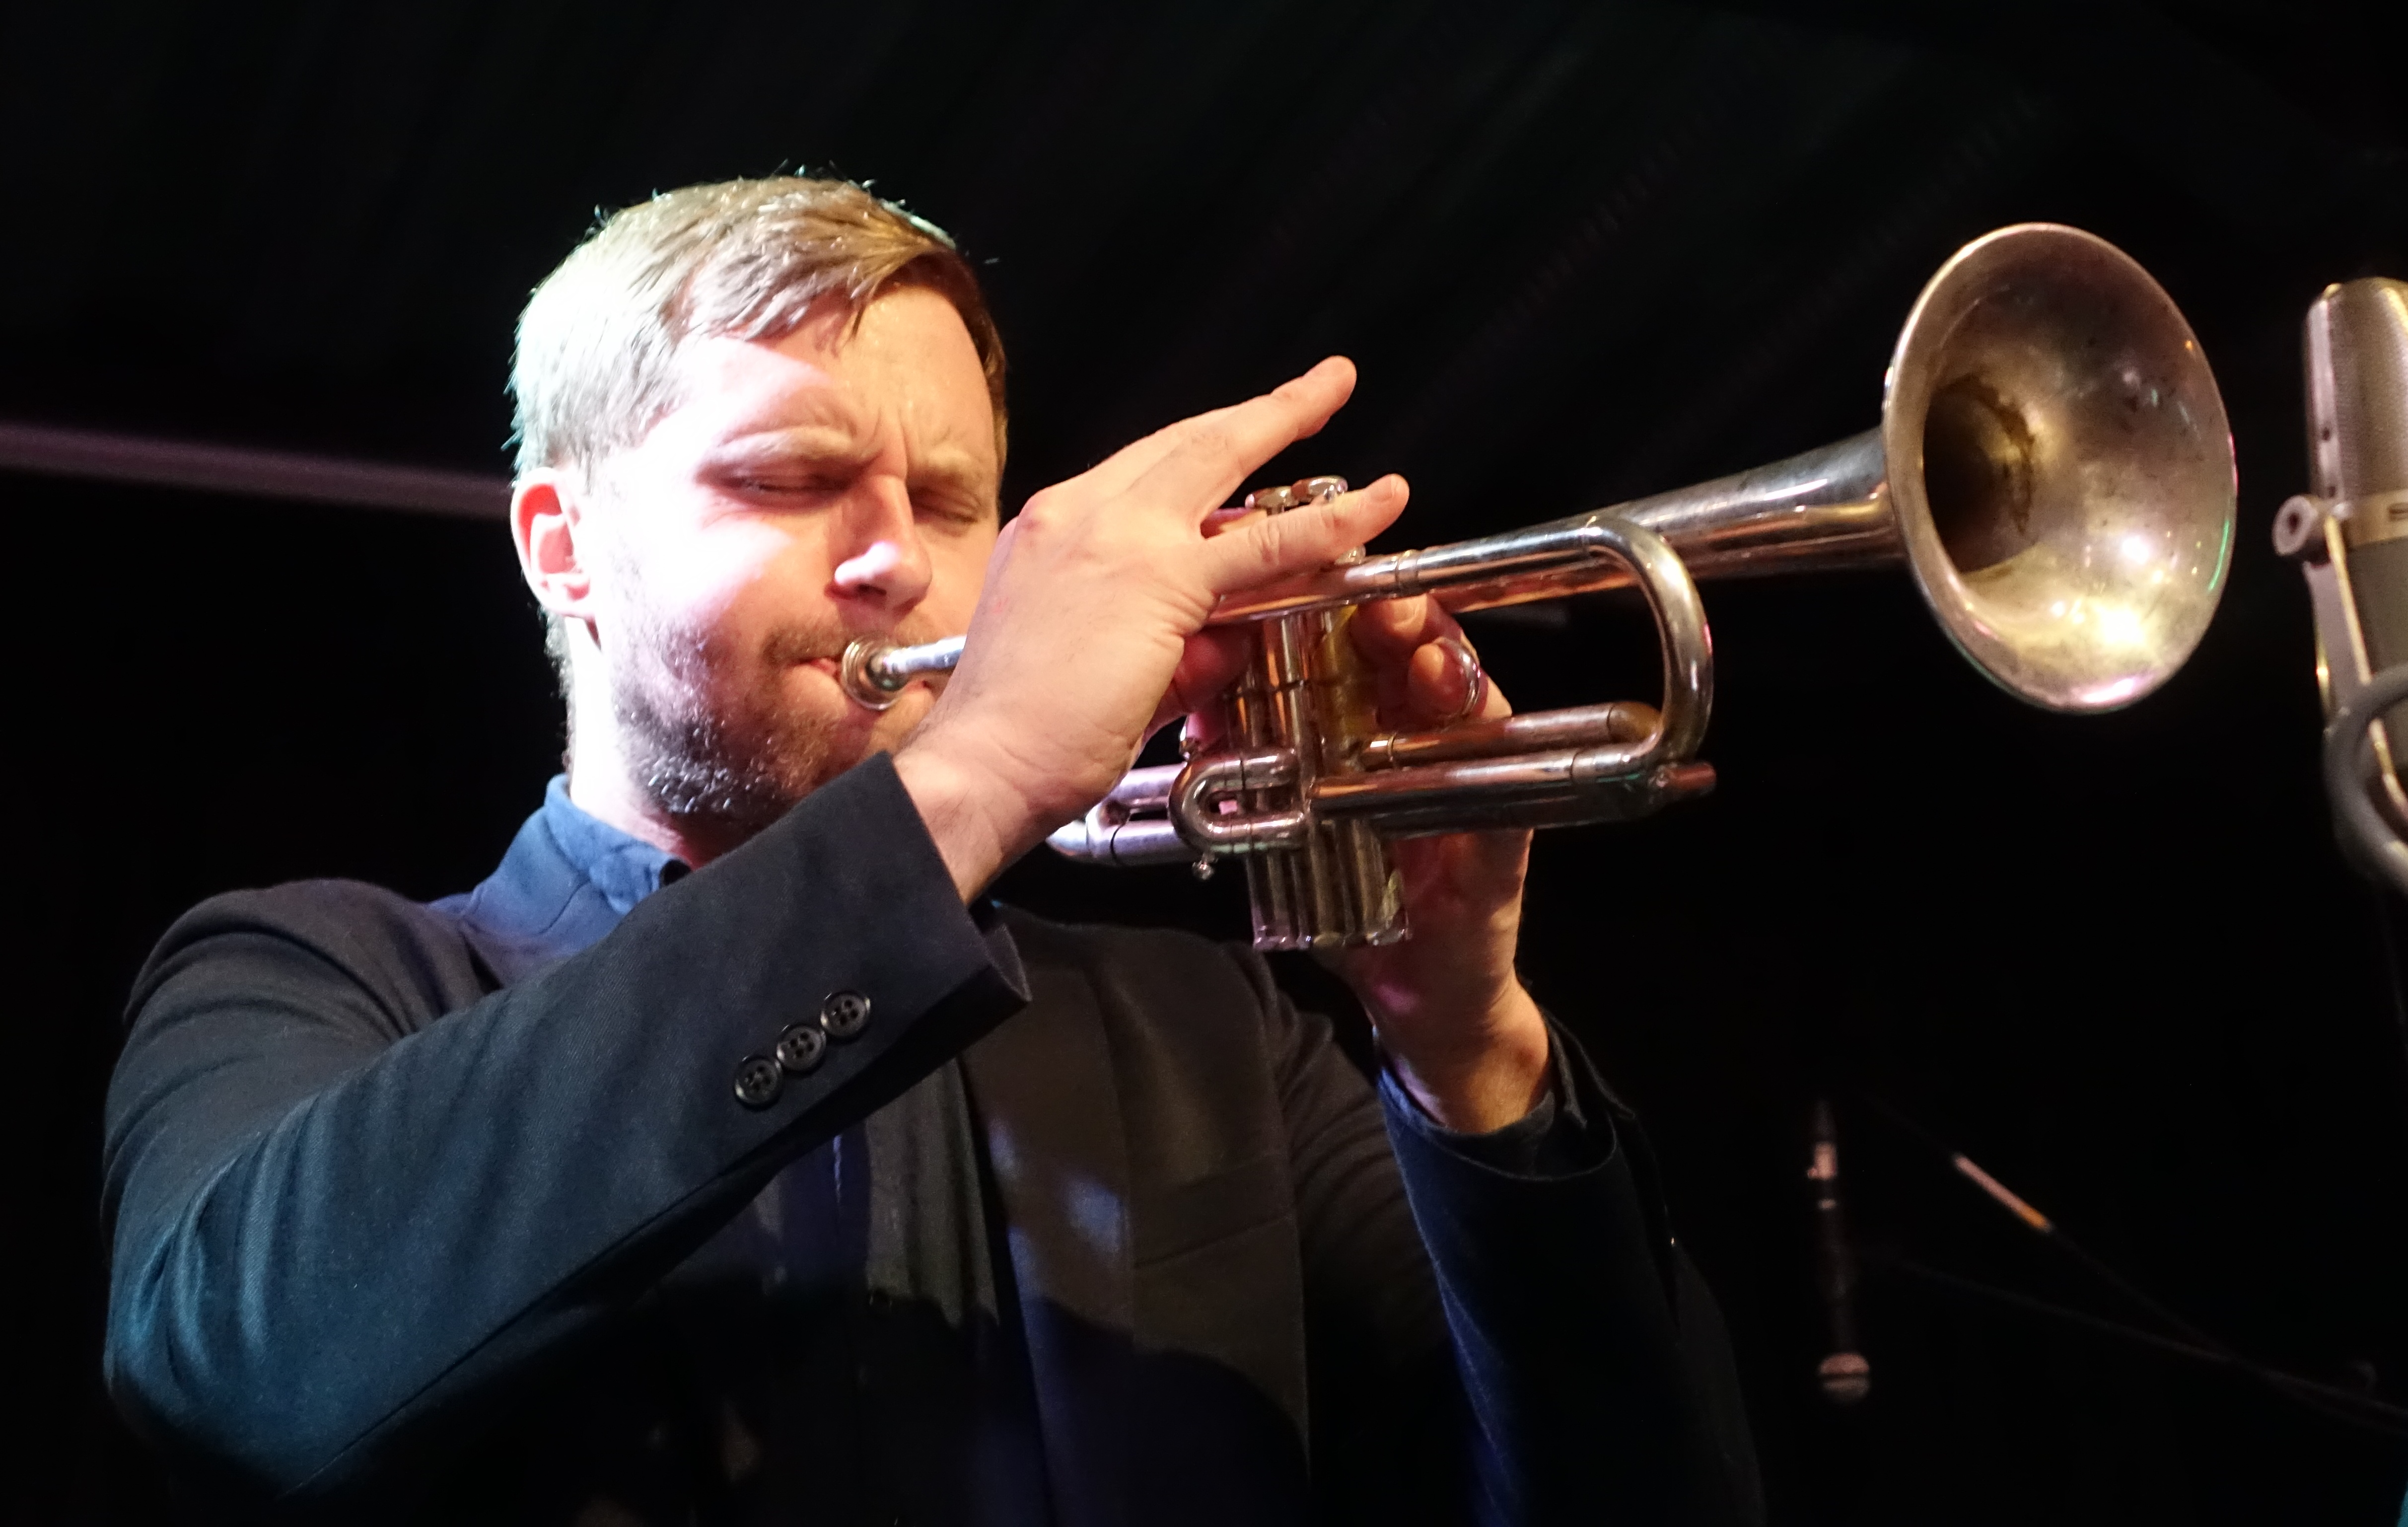 Peter Evans at the Vortex, London in December 2017